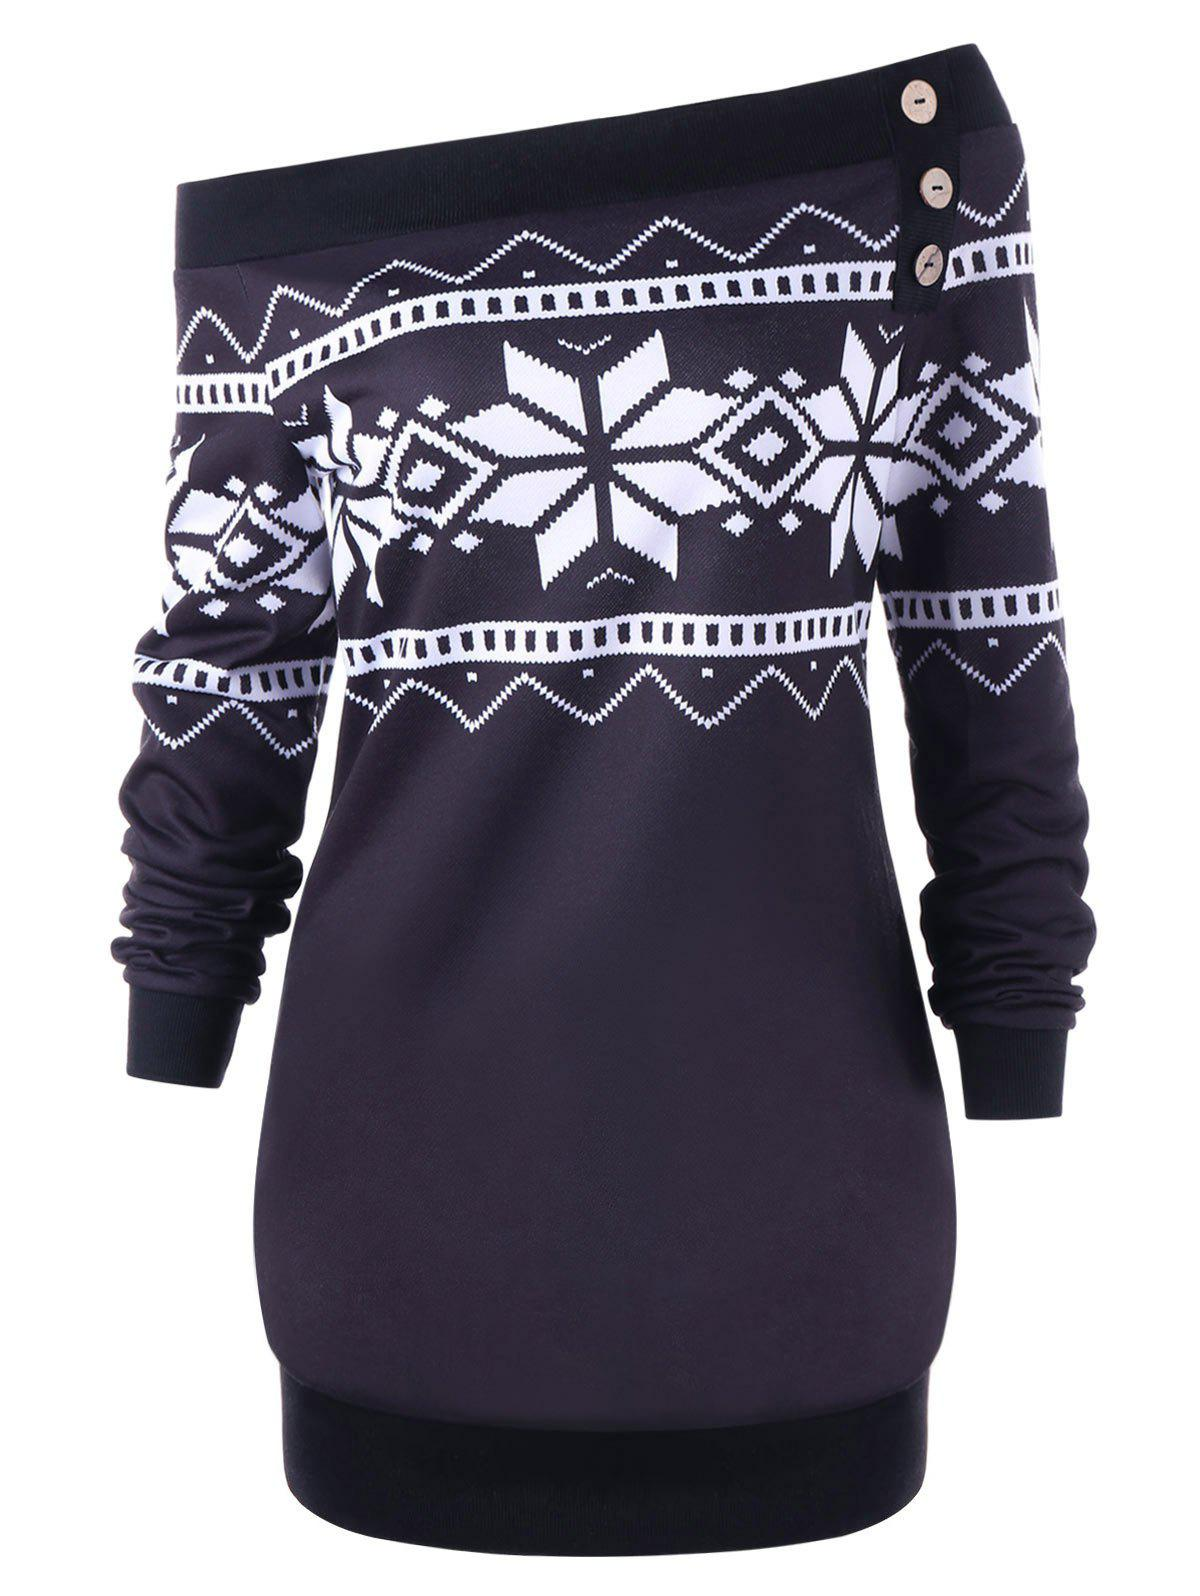 Plus Size Pullover Snowflake Geometric Skew Neck SweatshirtWOMEN<br><br>Size: XL; Color: SMASHING; Material: Polyester,Spandex; Shirt Length: Long; Sleeve Length: Full; Style: Fashion; Pattern Style: Geometric; Embellishment: Button; Season: Fall,Spring,Winter; Weight: 0.5000kg; Package Contents: 1 x Sweatshirt;